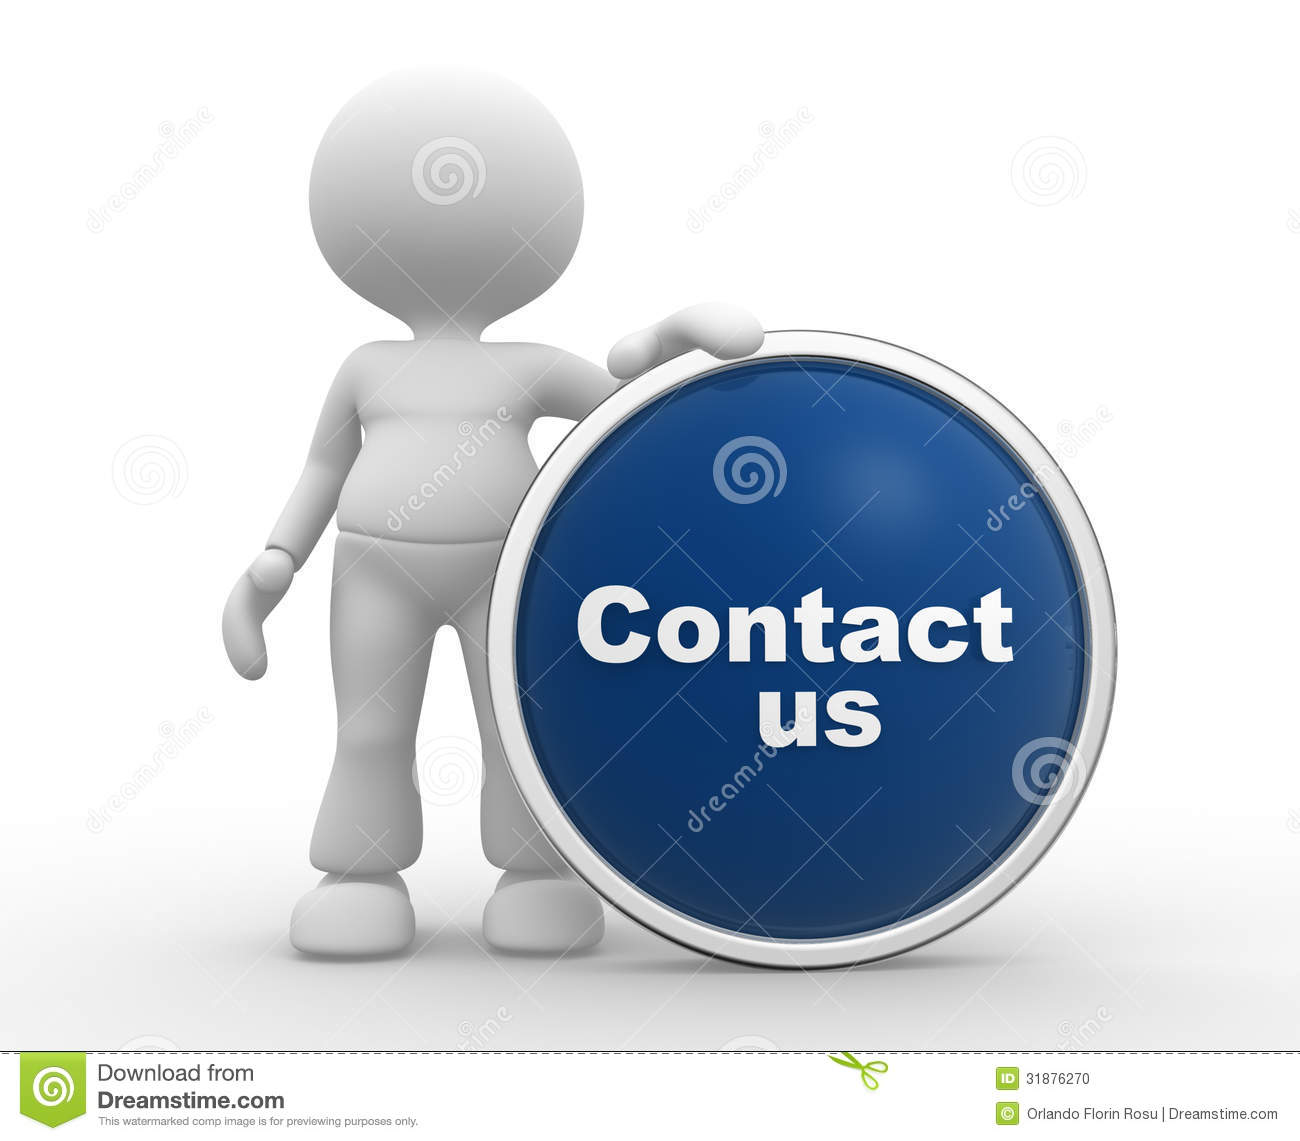 Contact Us: Contact Us Stock Illustration. Illustration Of Emergency